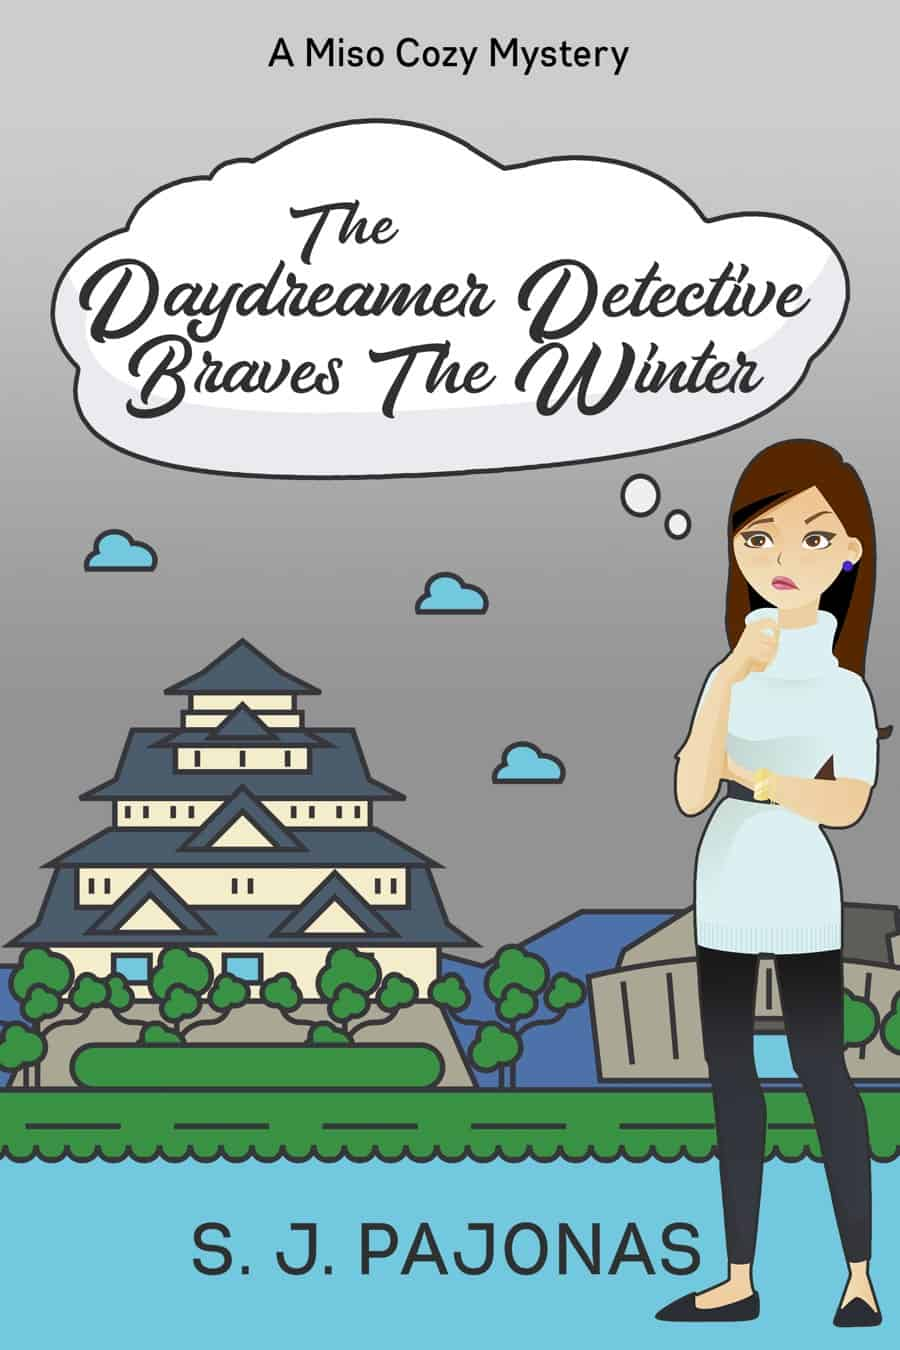 Check out the cover and blurb for the second book in the Miso Cozy Mysteries Series! Pre-order information is now available as well.